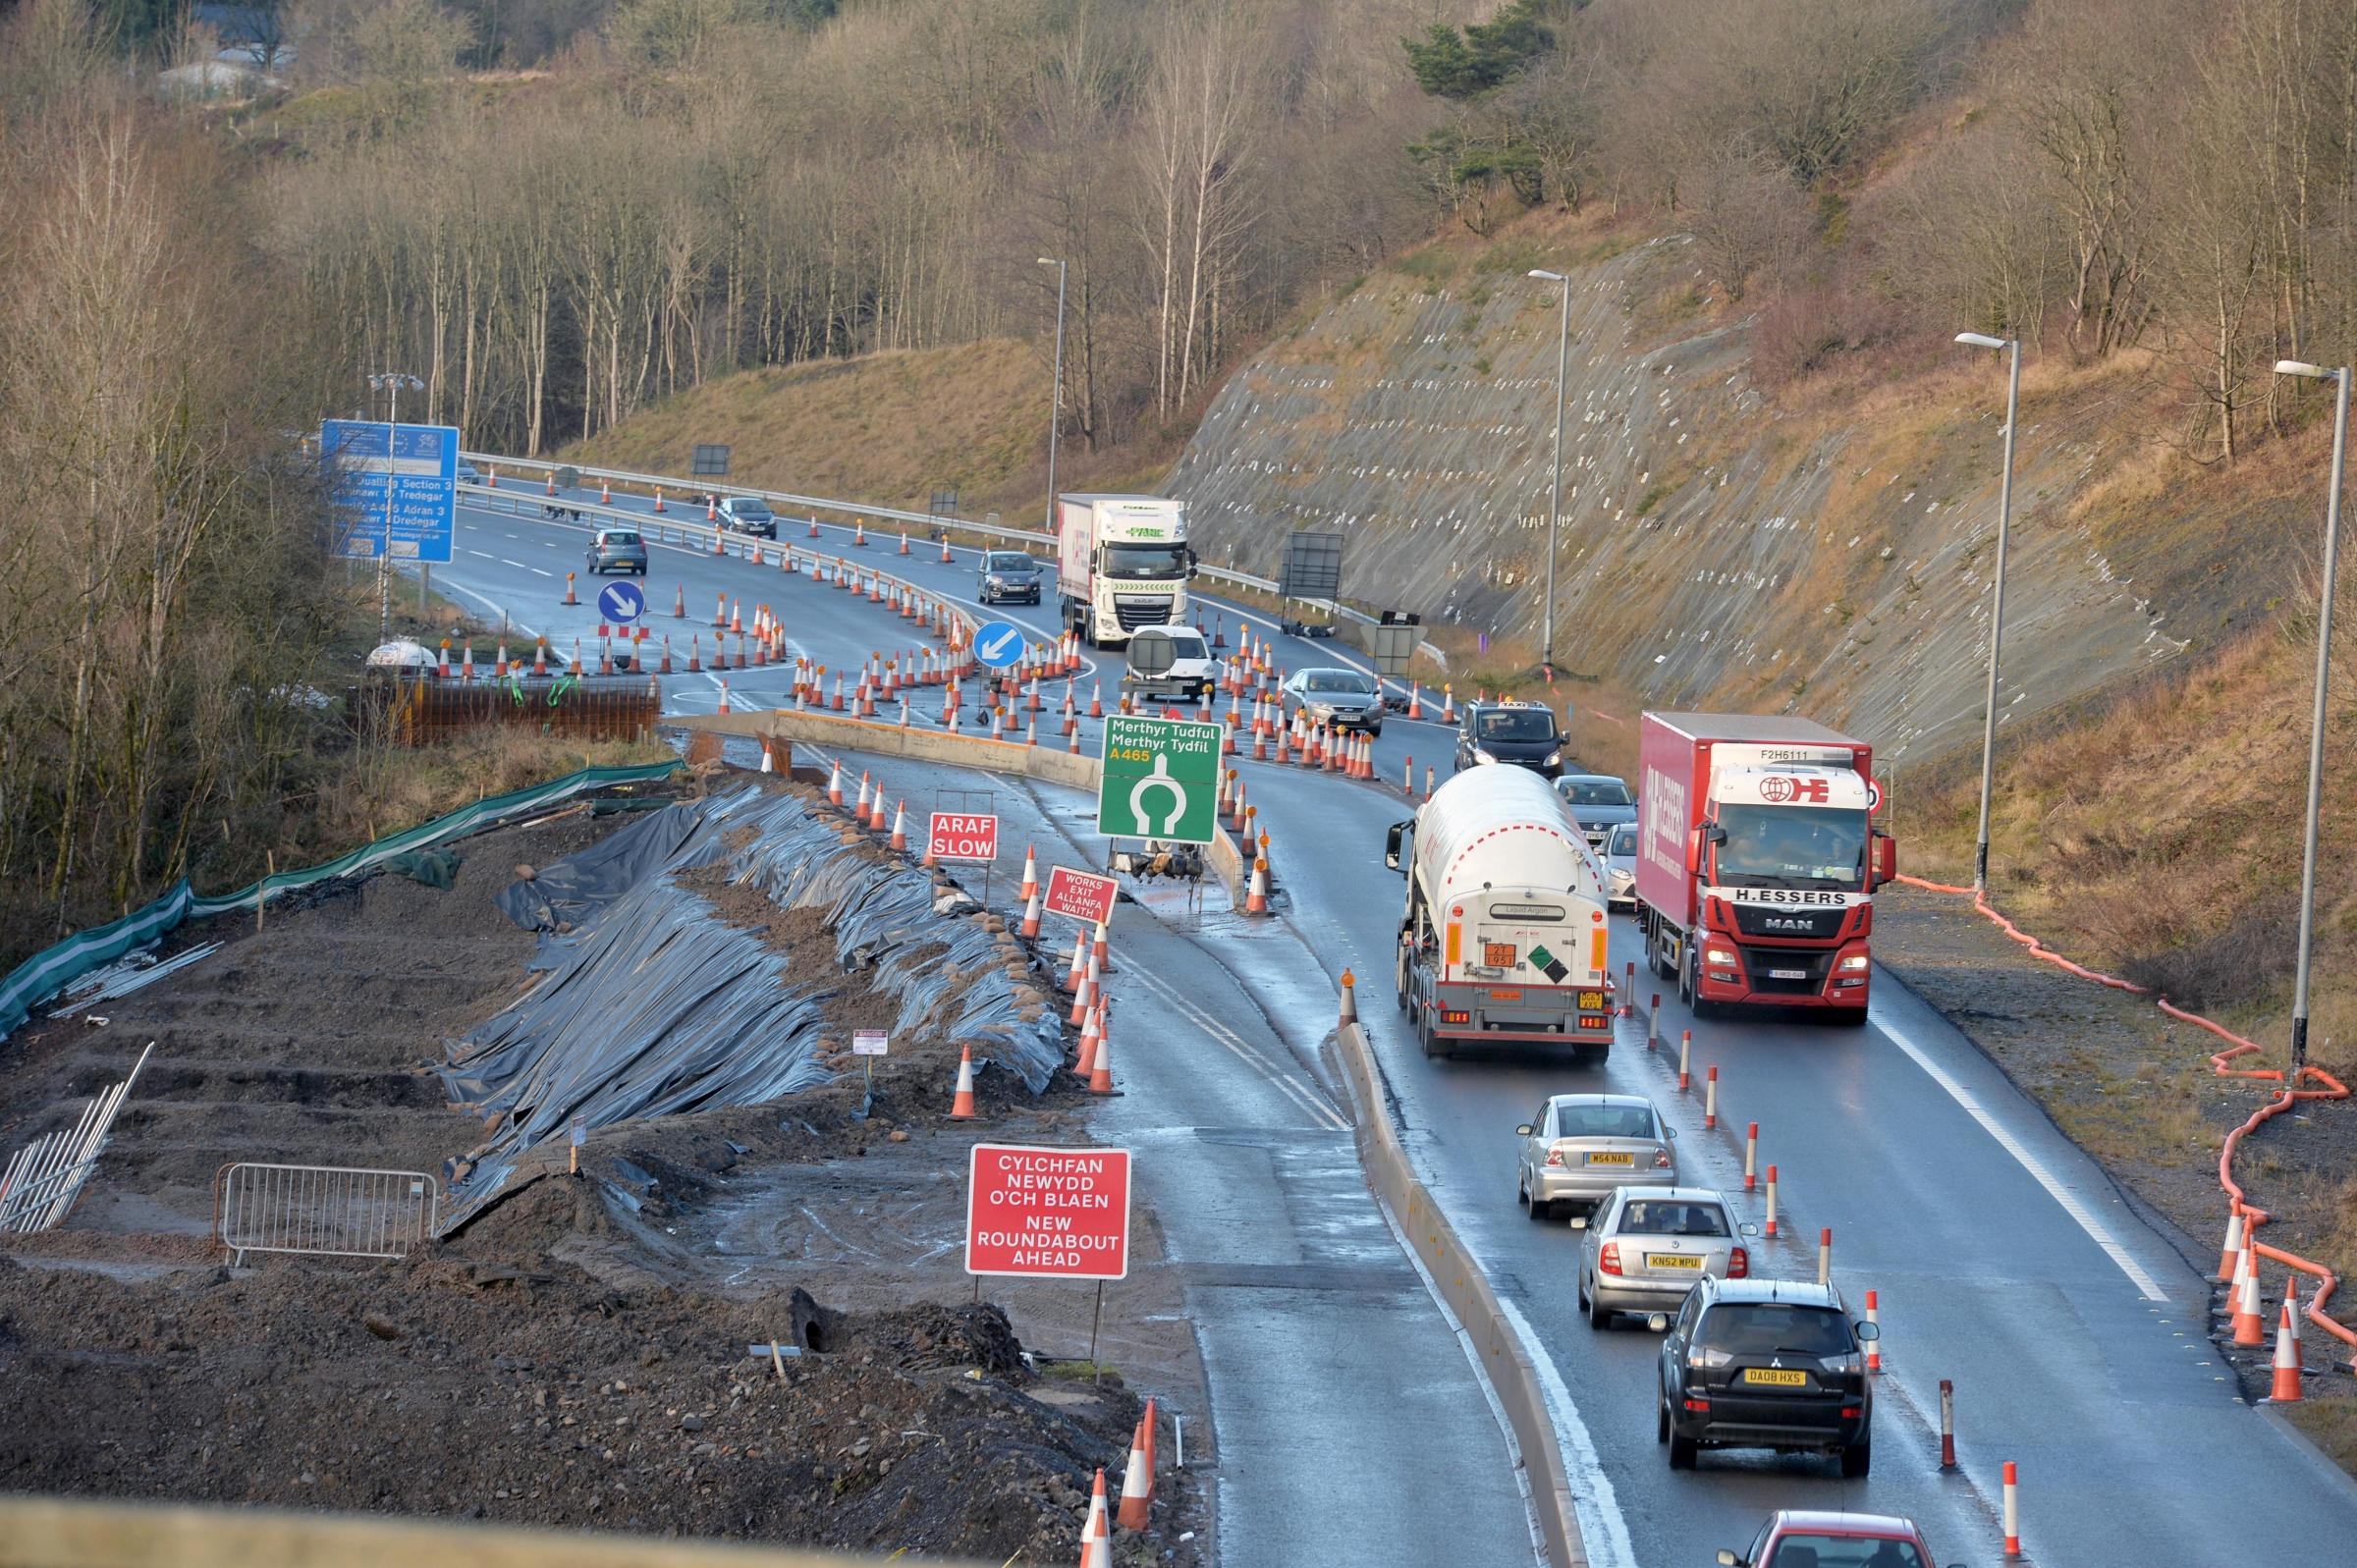 Heads of the valleys road works in Ebbw Vale.